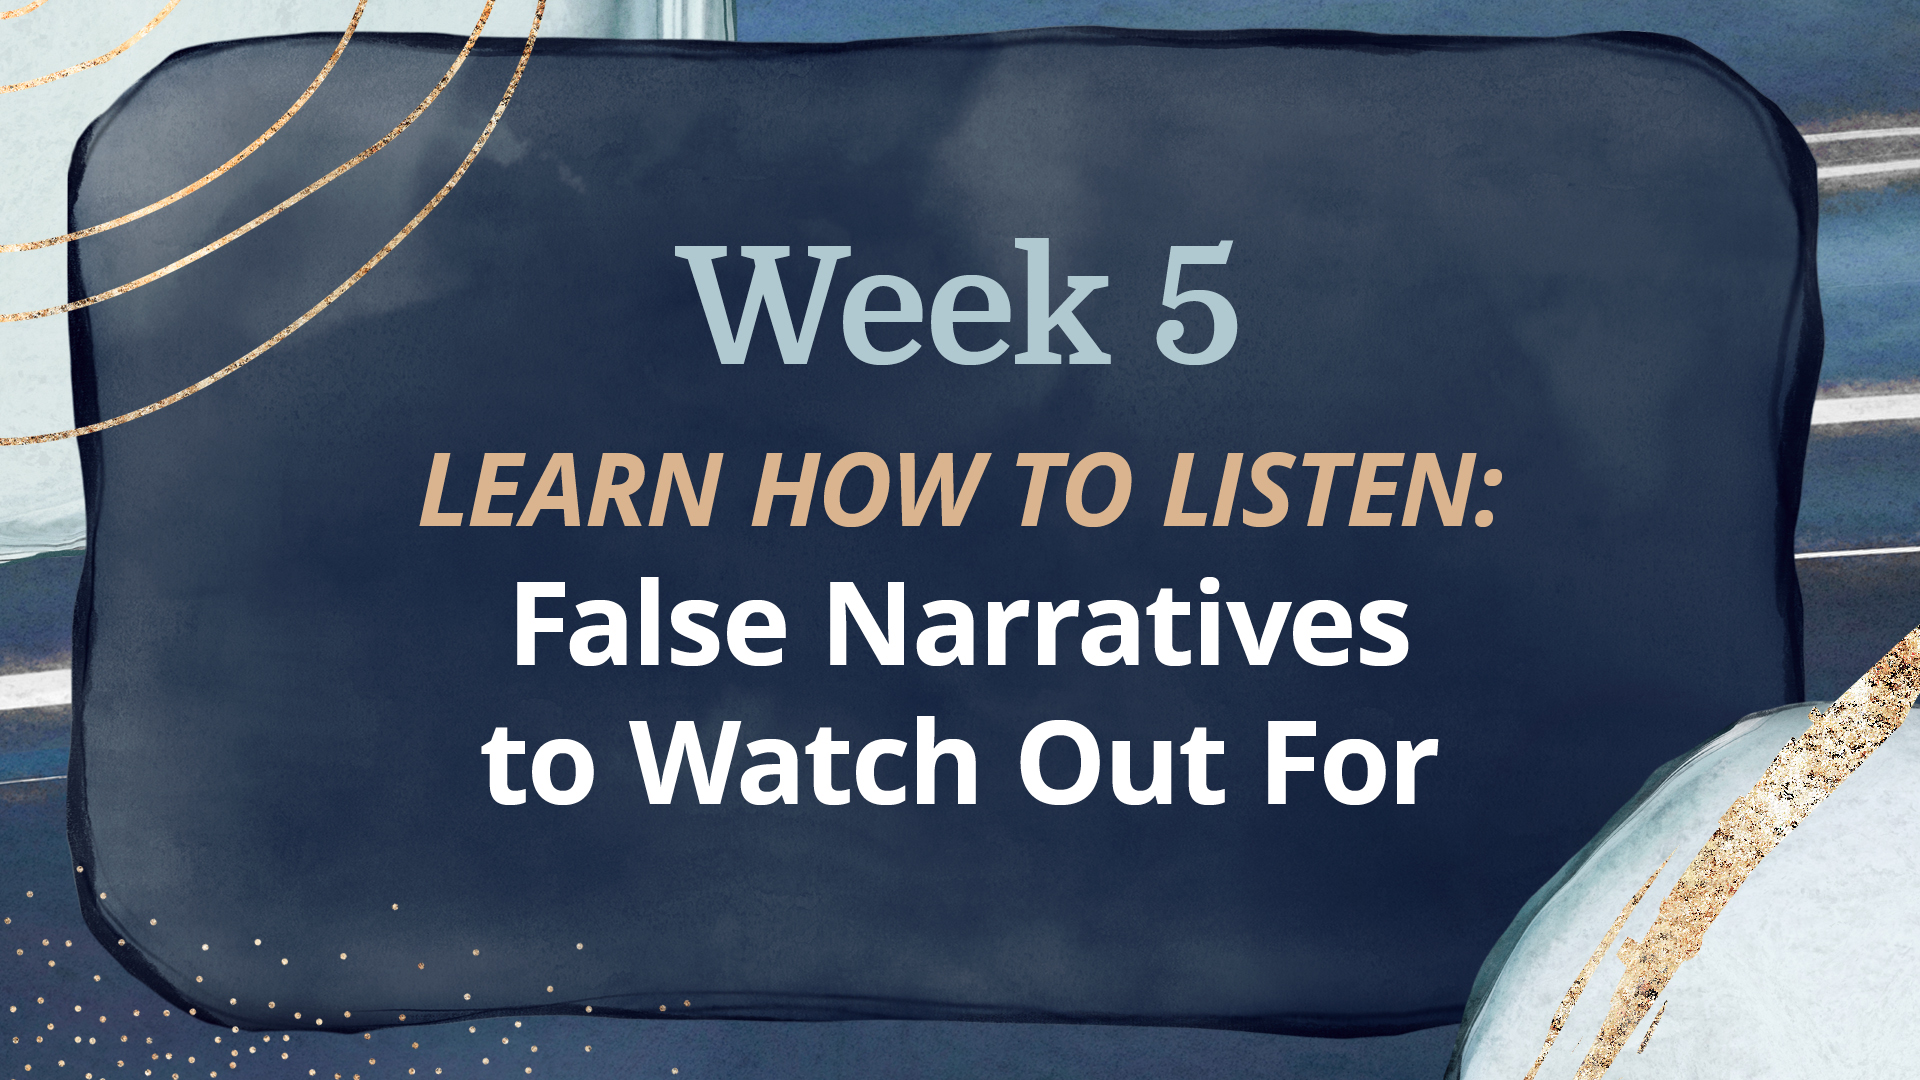 WEEK 5: False Narratives to Watch Out For